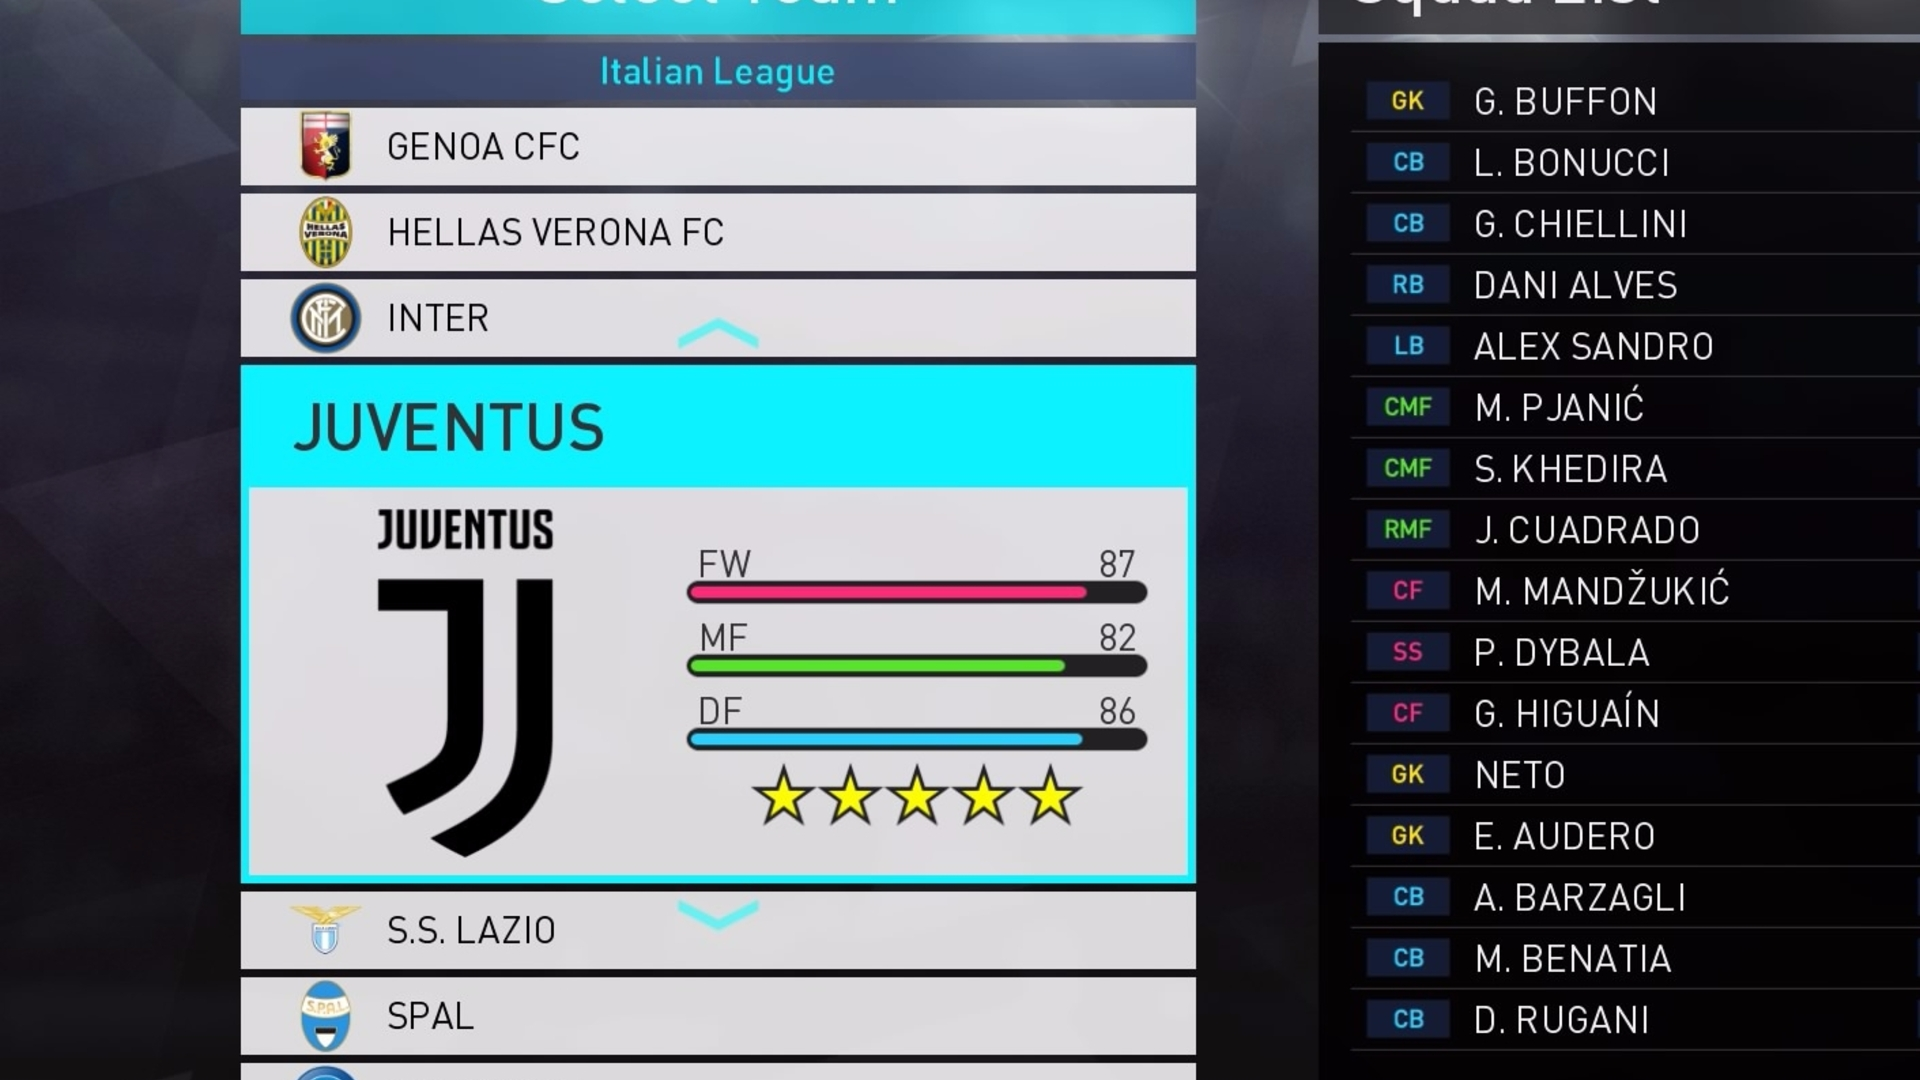 Pes 2019 Patch How To Download Option Files Get Licences Kits Pc Original Steam Offline Badges And More On Ps4